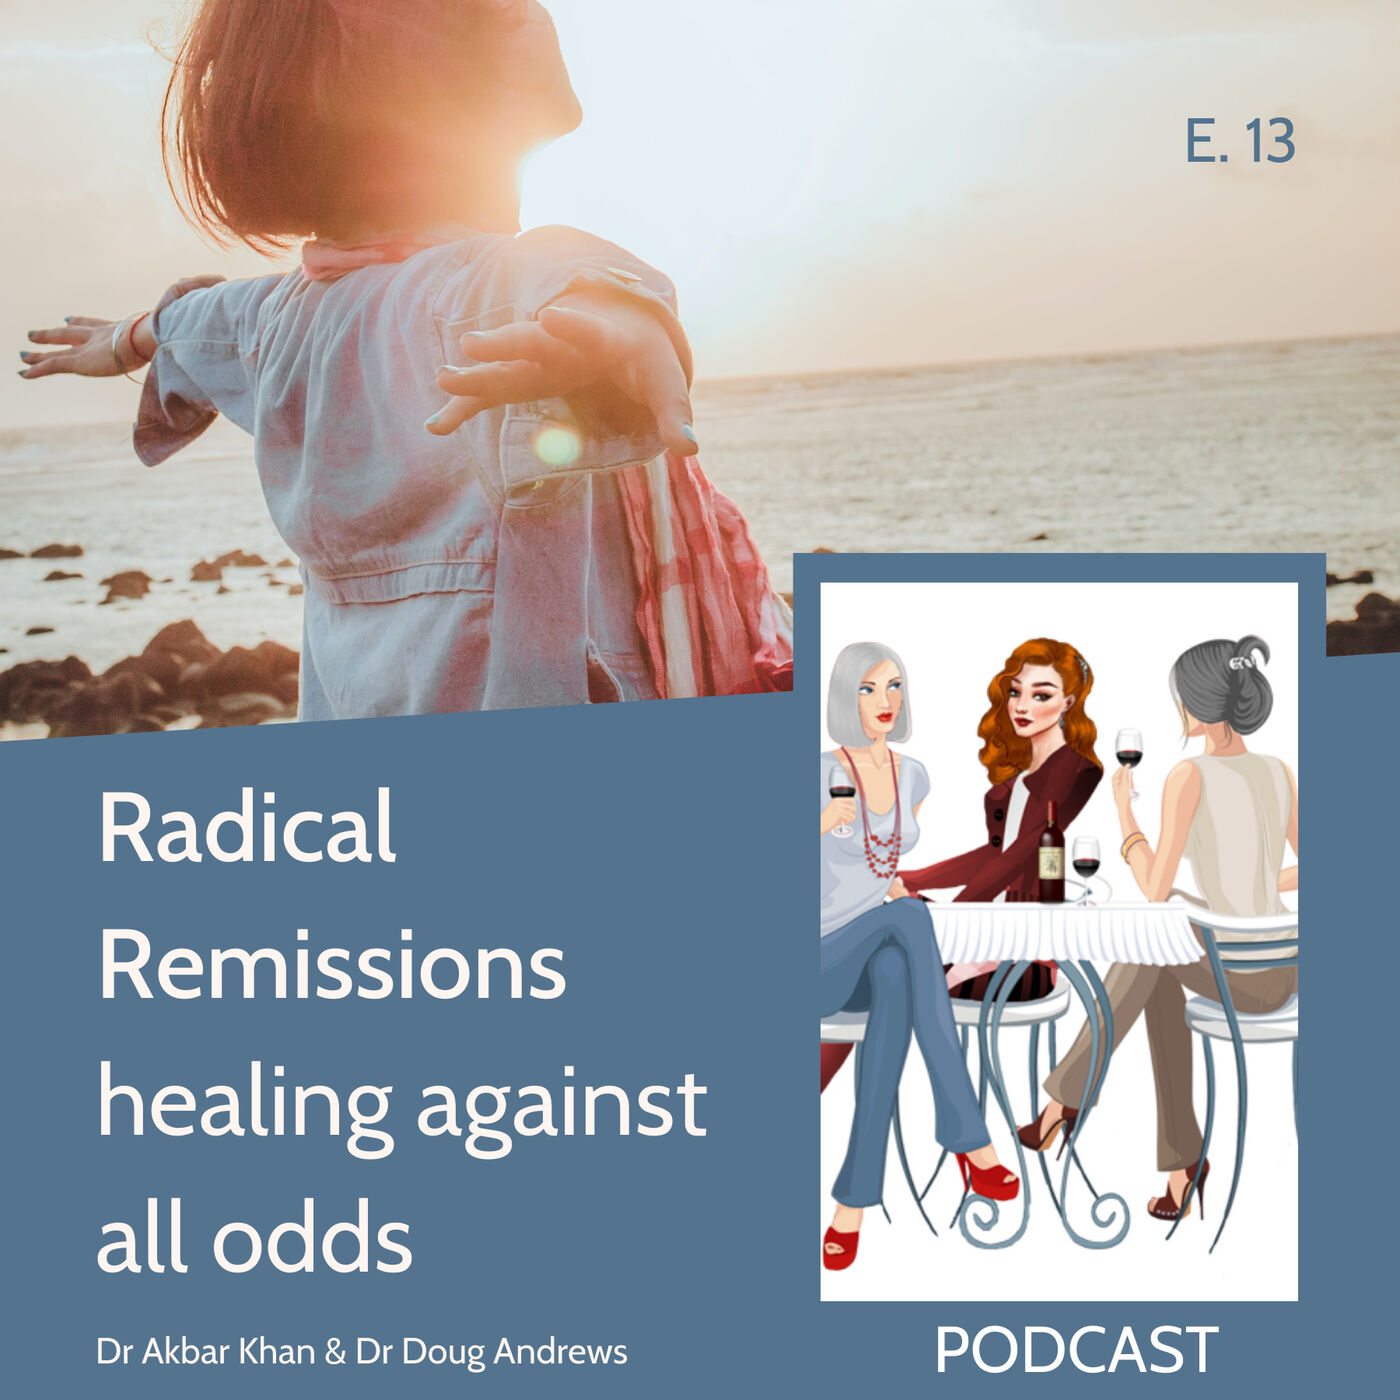 Radical Remissions - healing against all odds